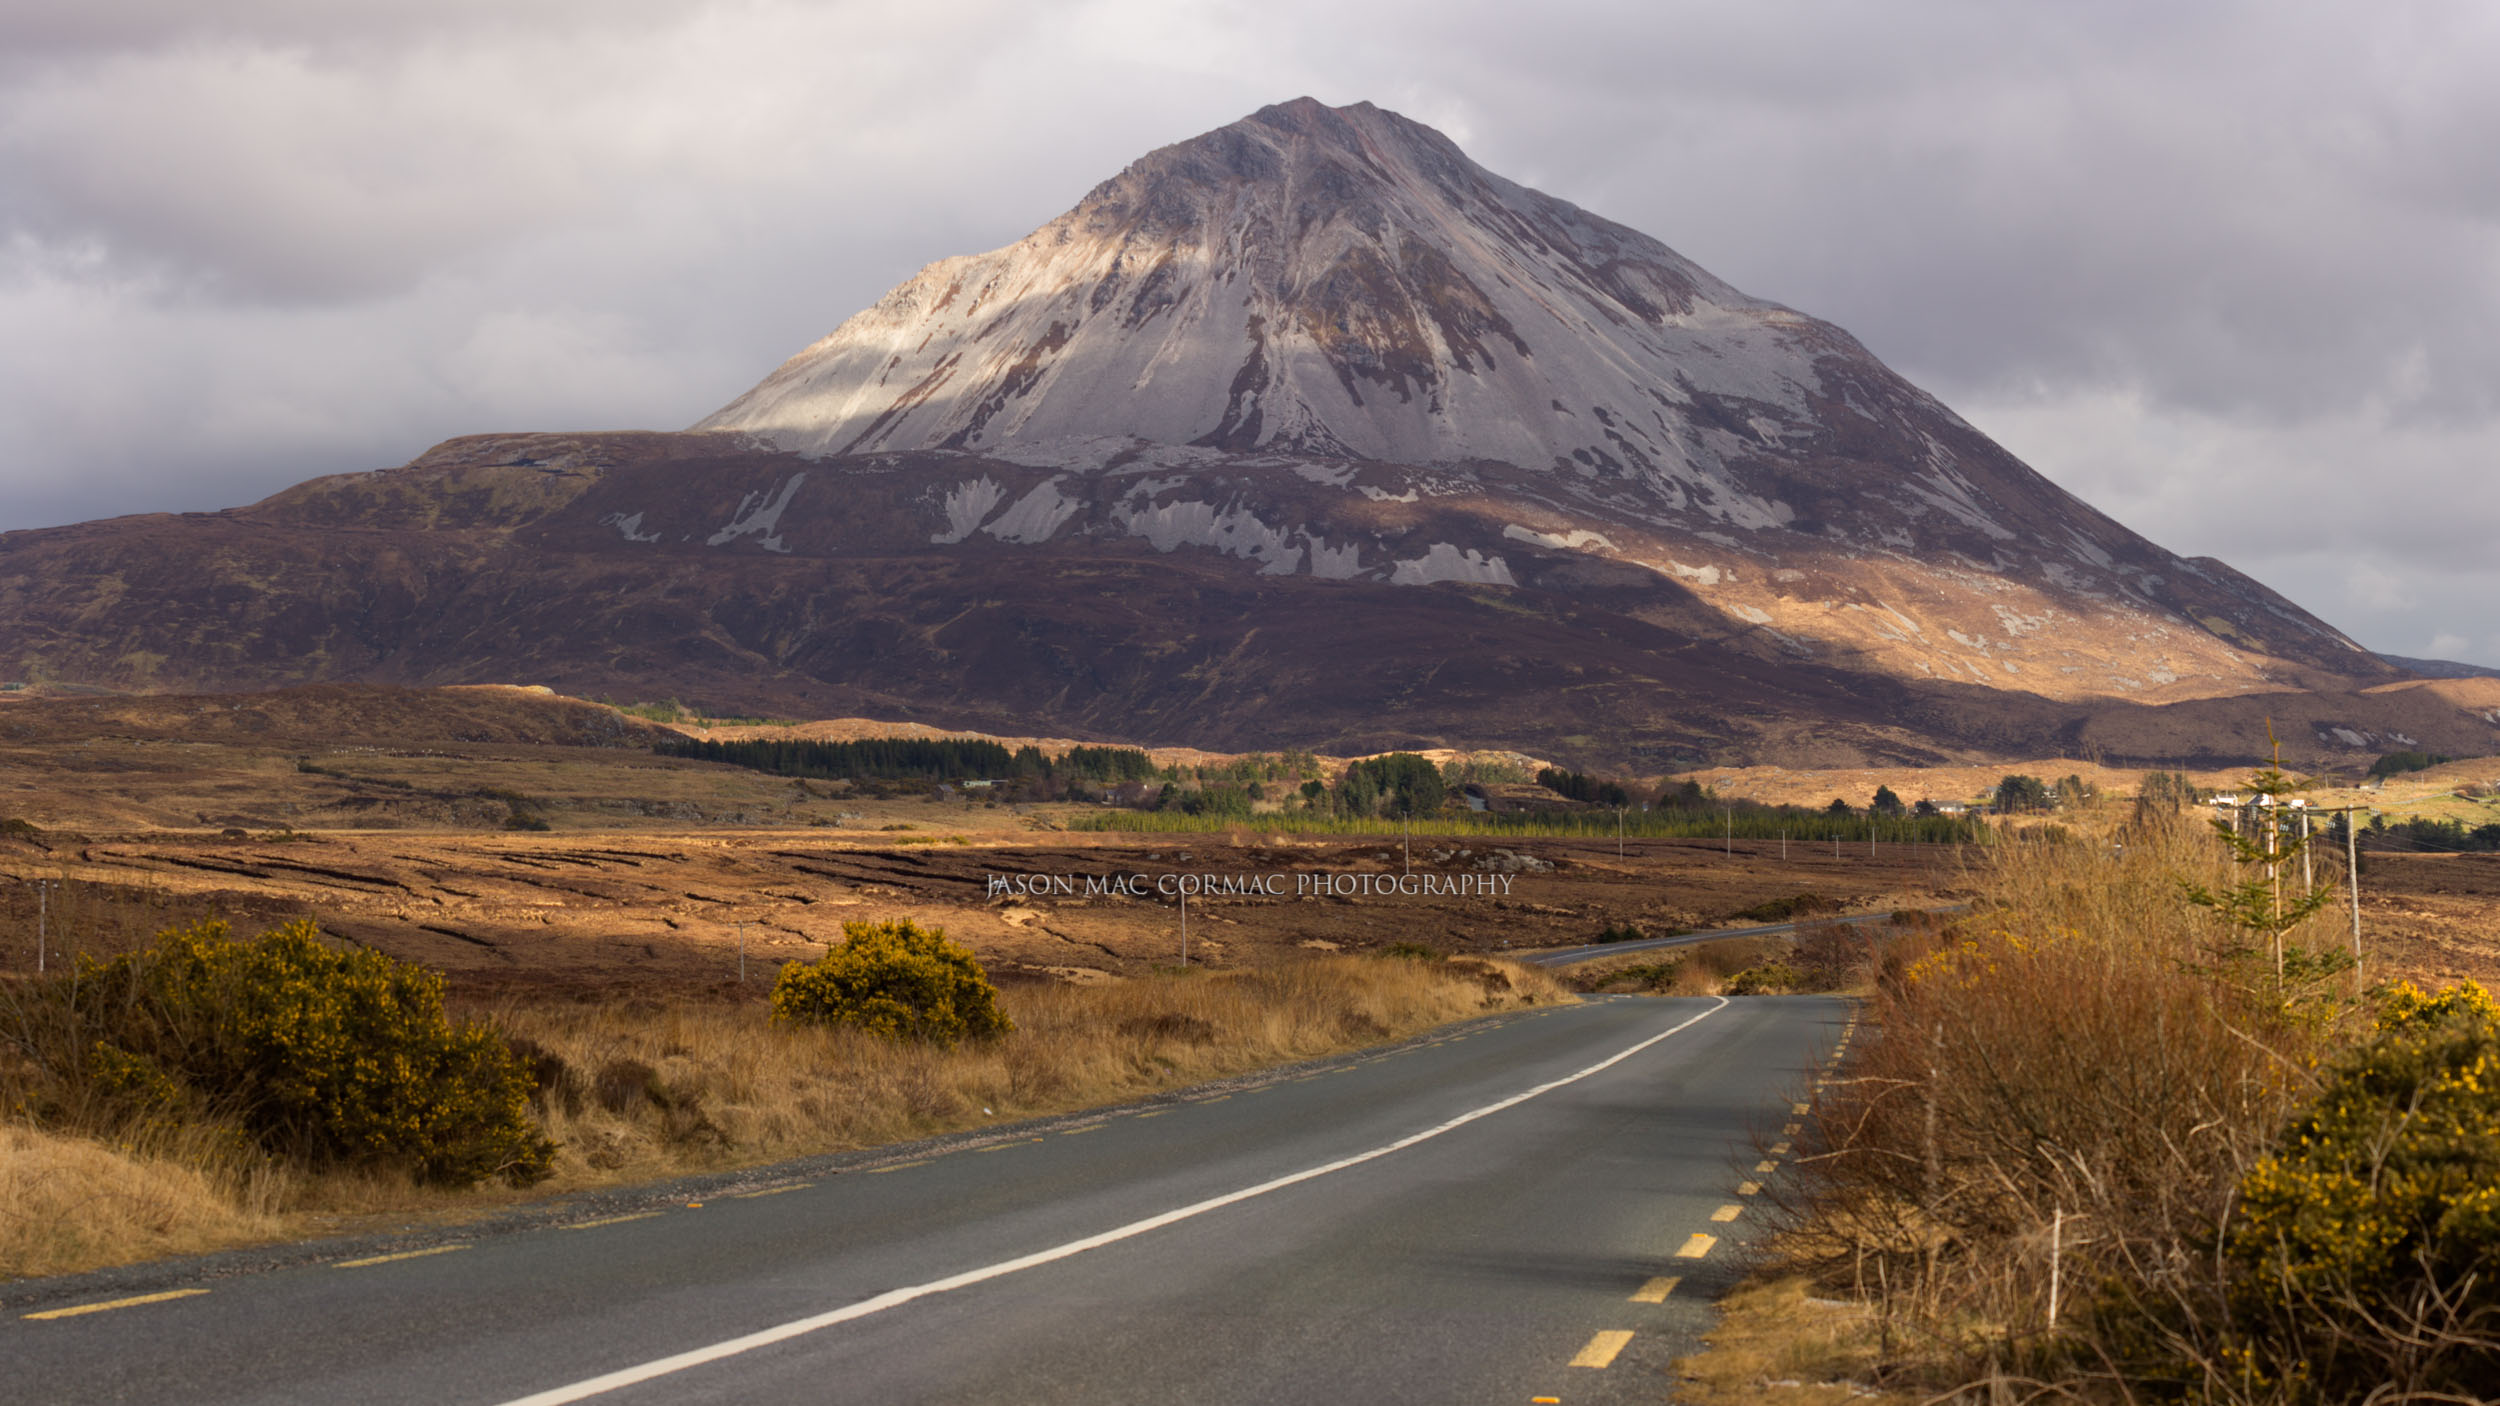 Mount Errigal, County Donegal